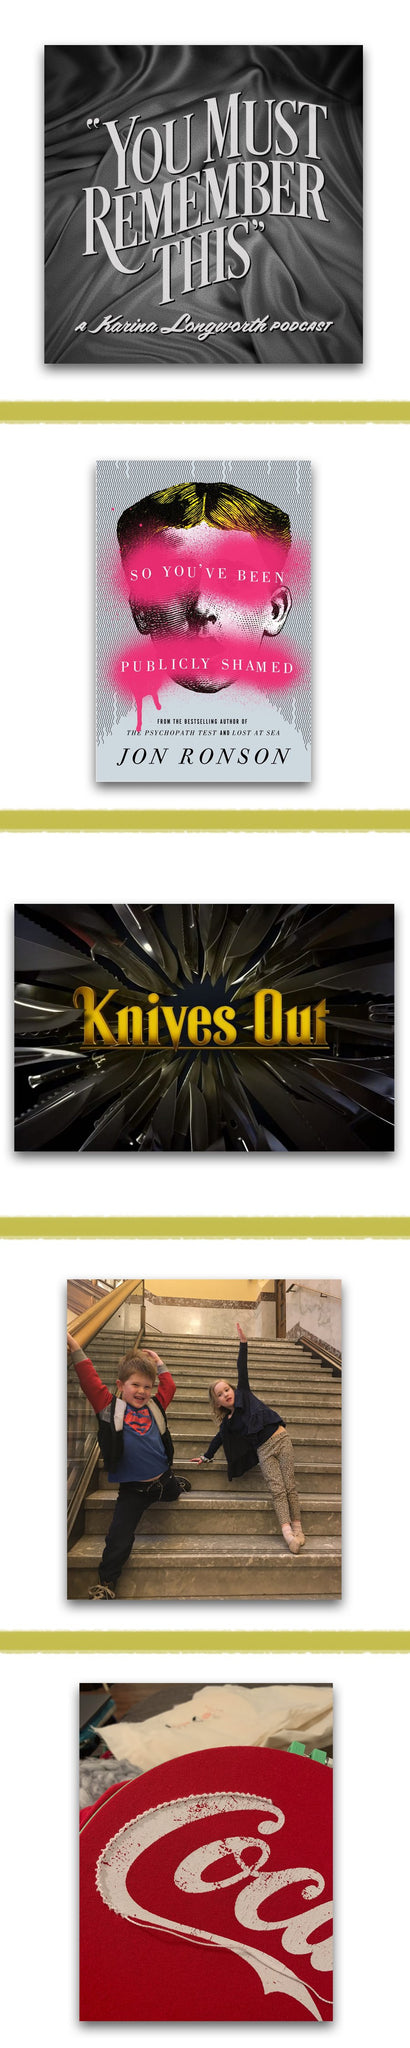 you must remember this podcast, jon ronson book, knives out movie, monthly HQ happenings